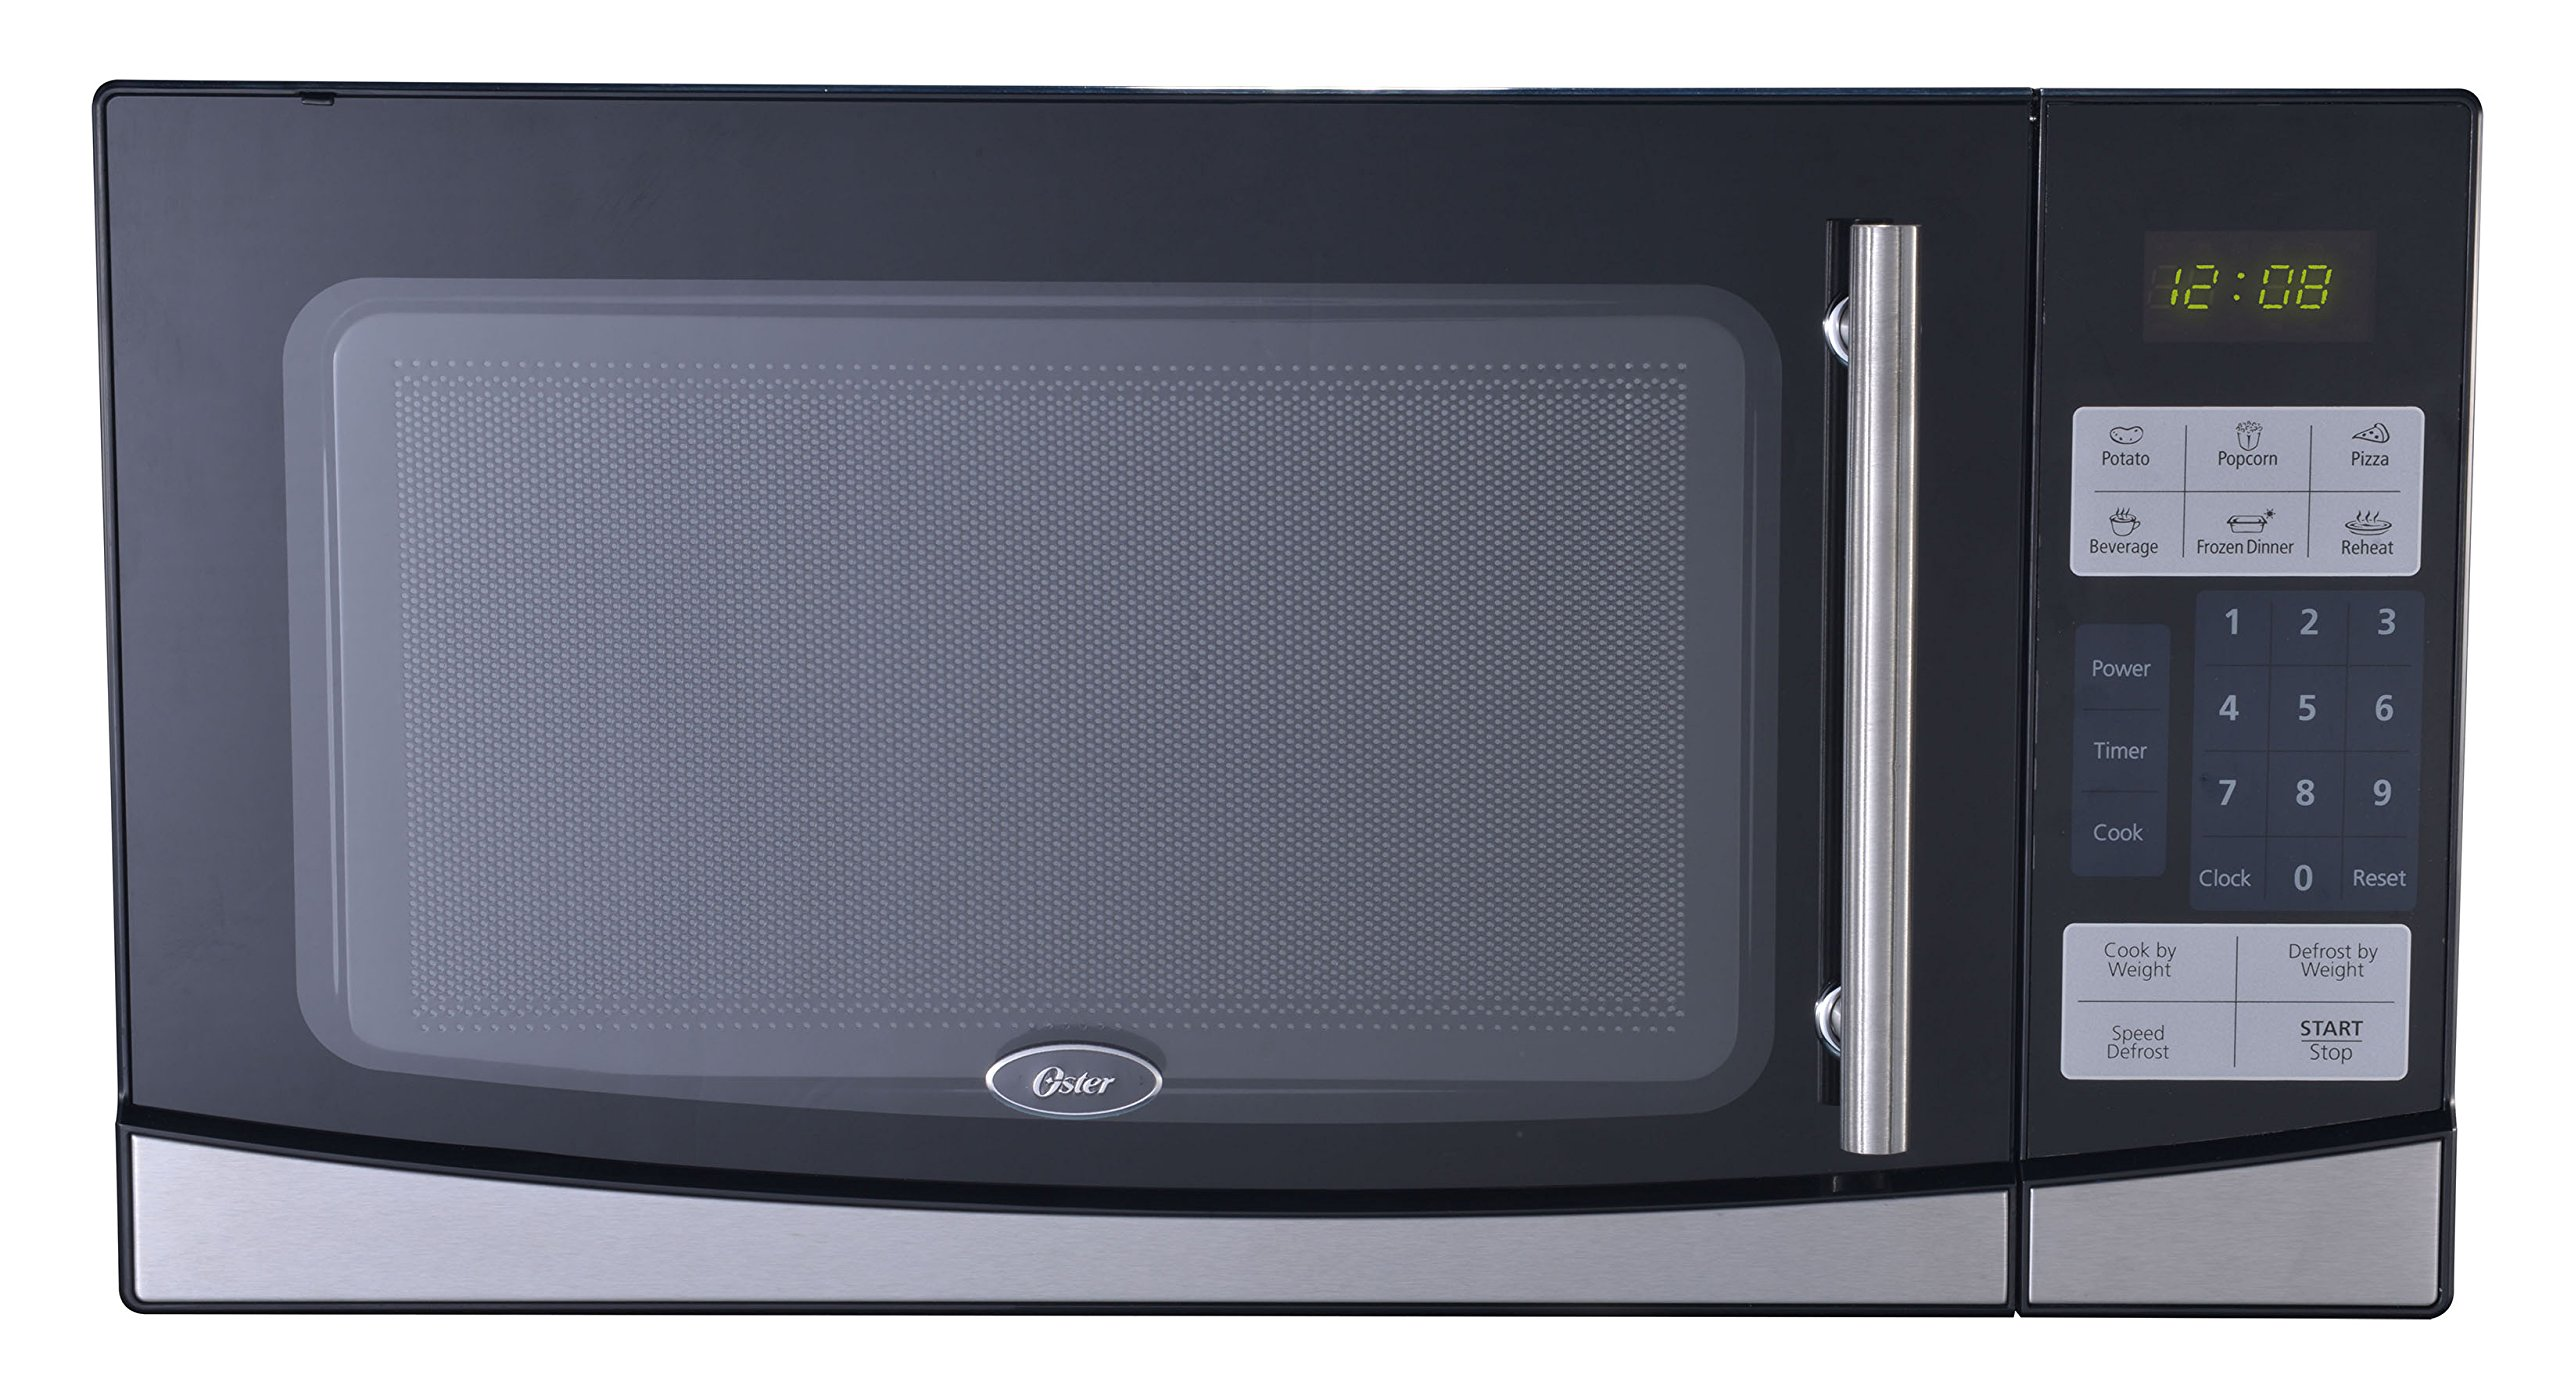 Oster OGB61102 1.1-Cubic Feet Digital Microwave Oven, Black by Oster